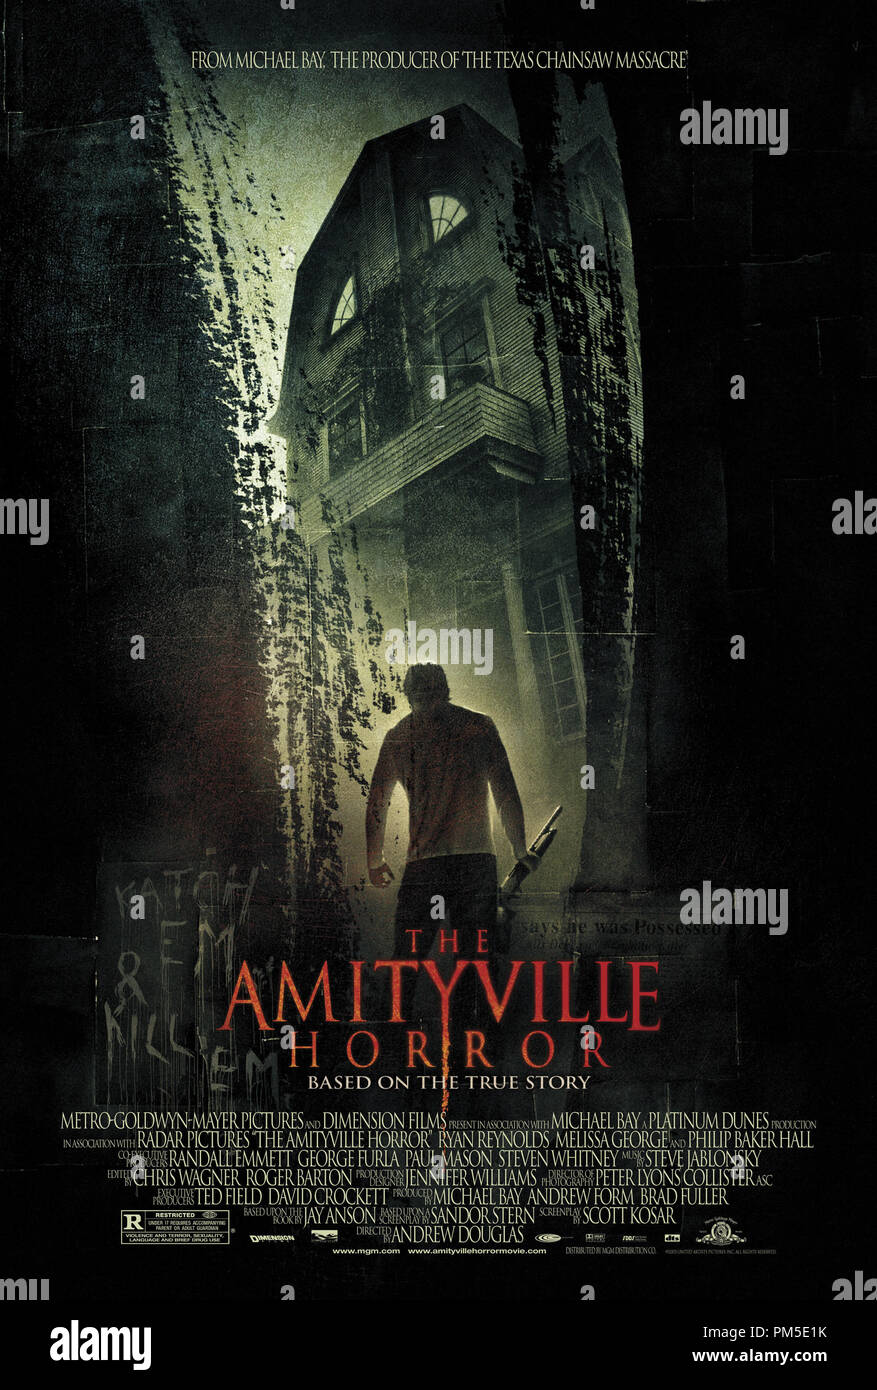 'The Amityville Horror' Poster © 2005 MGM  File Reference # 30736670THA  For Editorial Use Only -  All Rights Reserved - Stock Image